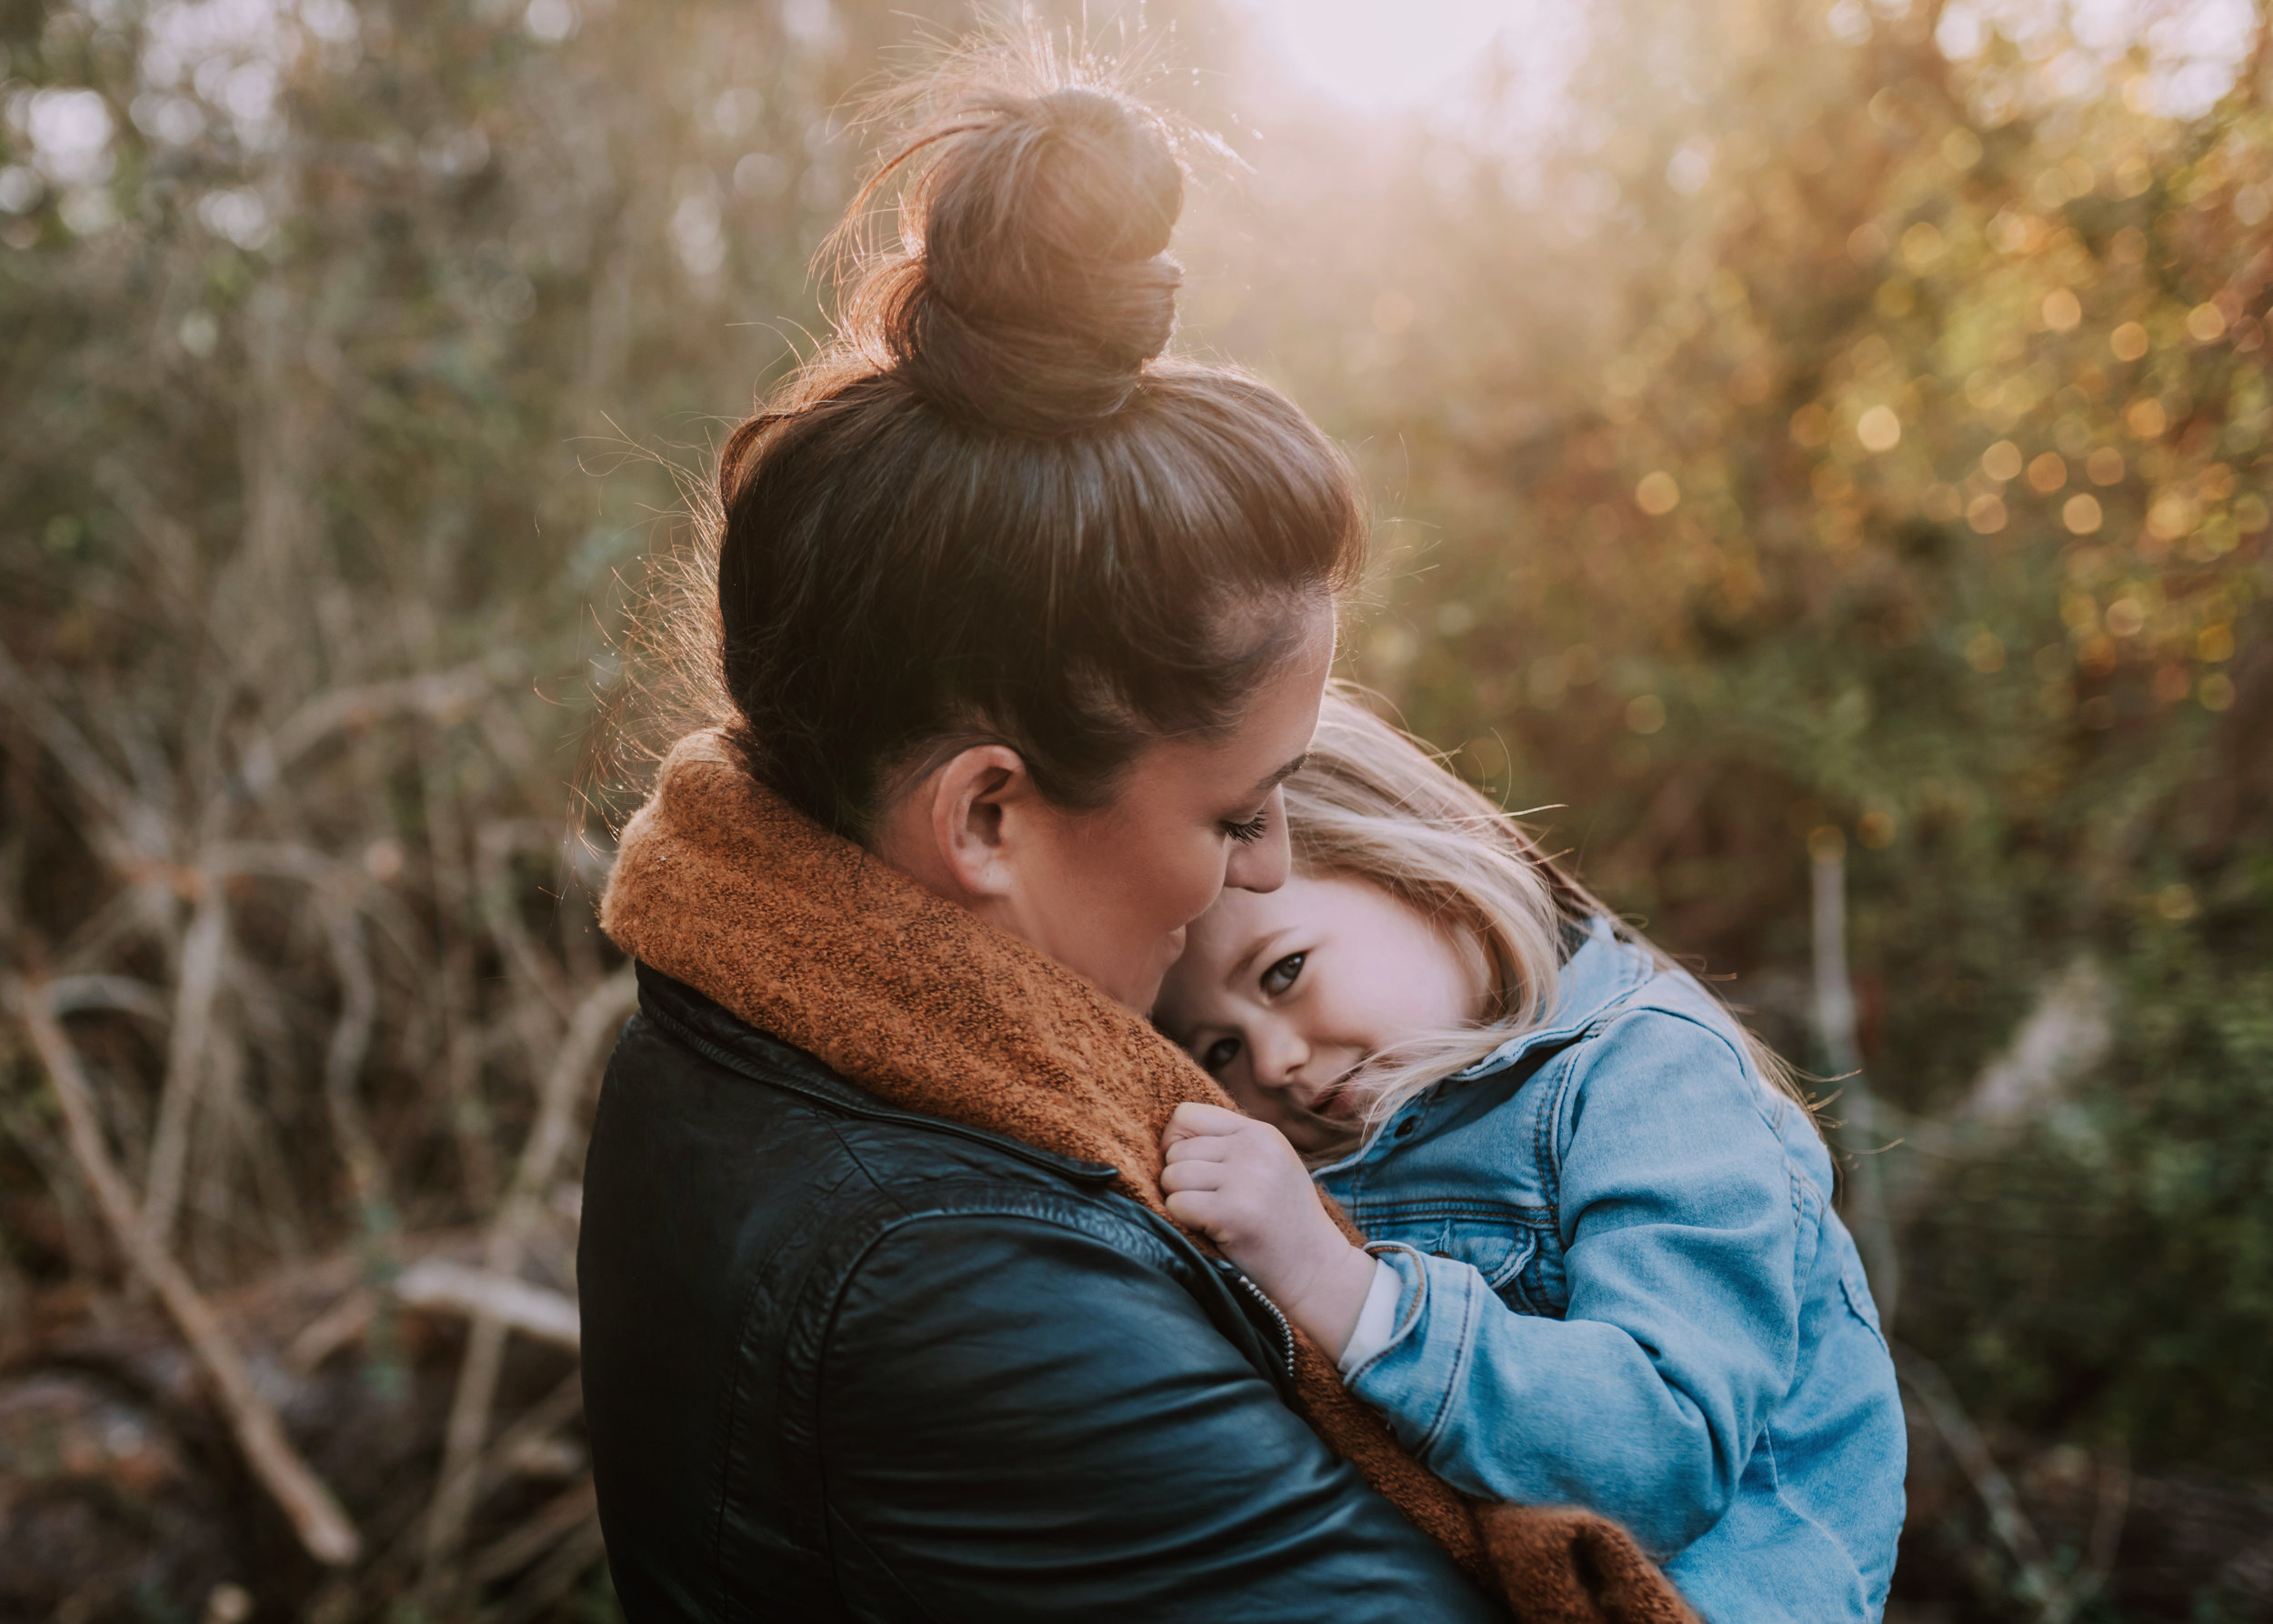 Sweet and Natural Family Portrait Photos